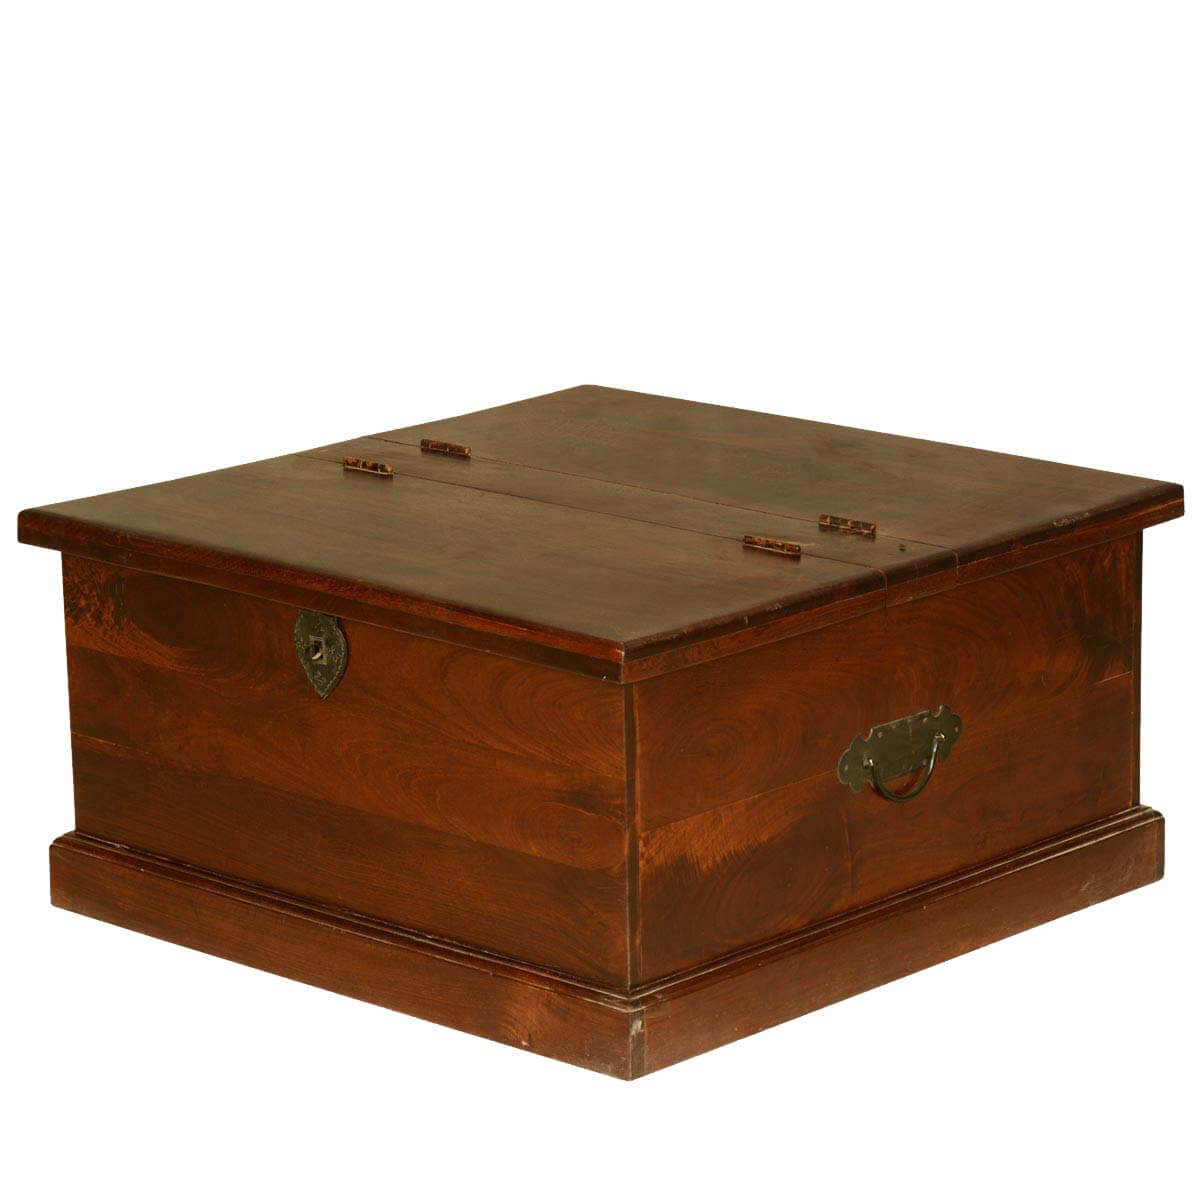 Grinnell 31.5 Square Solid Wood Coffee Table Chest